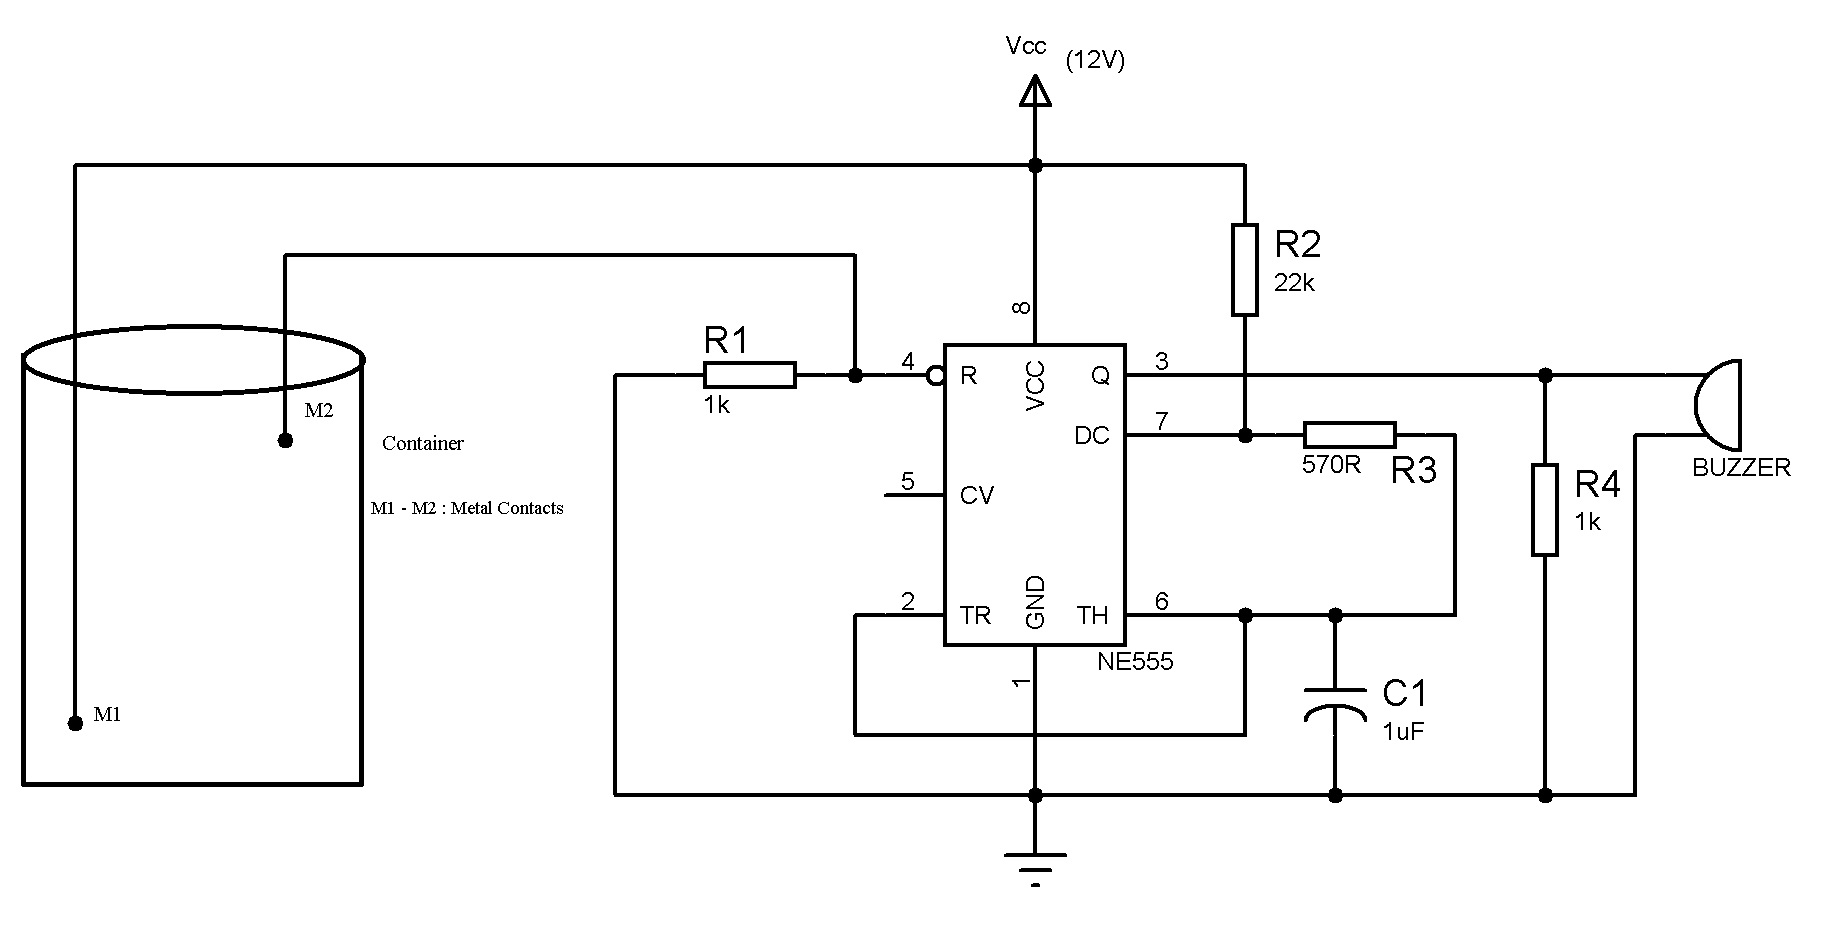 simple water level indicator with alarm 3 tested circuits rh electronicshub org circuit diagram of water level indicator with alarm circuit diagram of wireless water level indicator